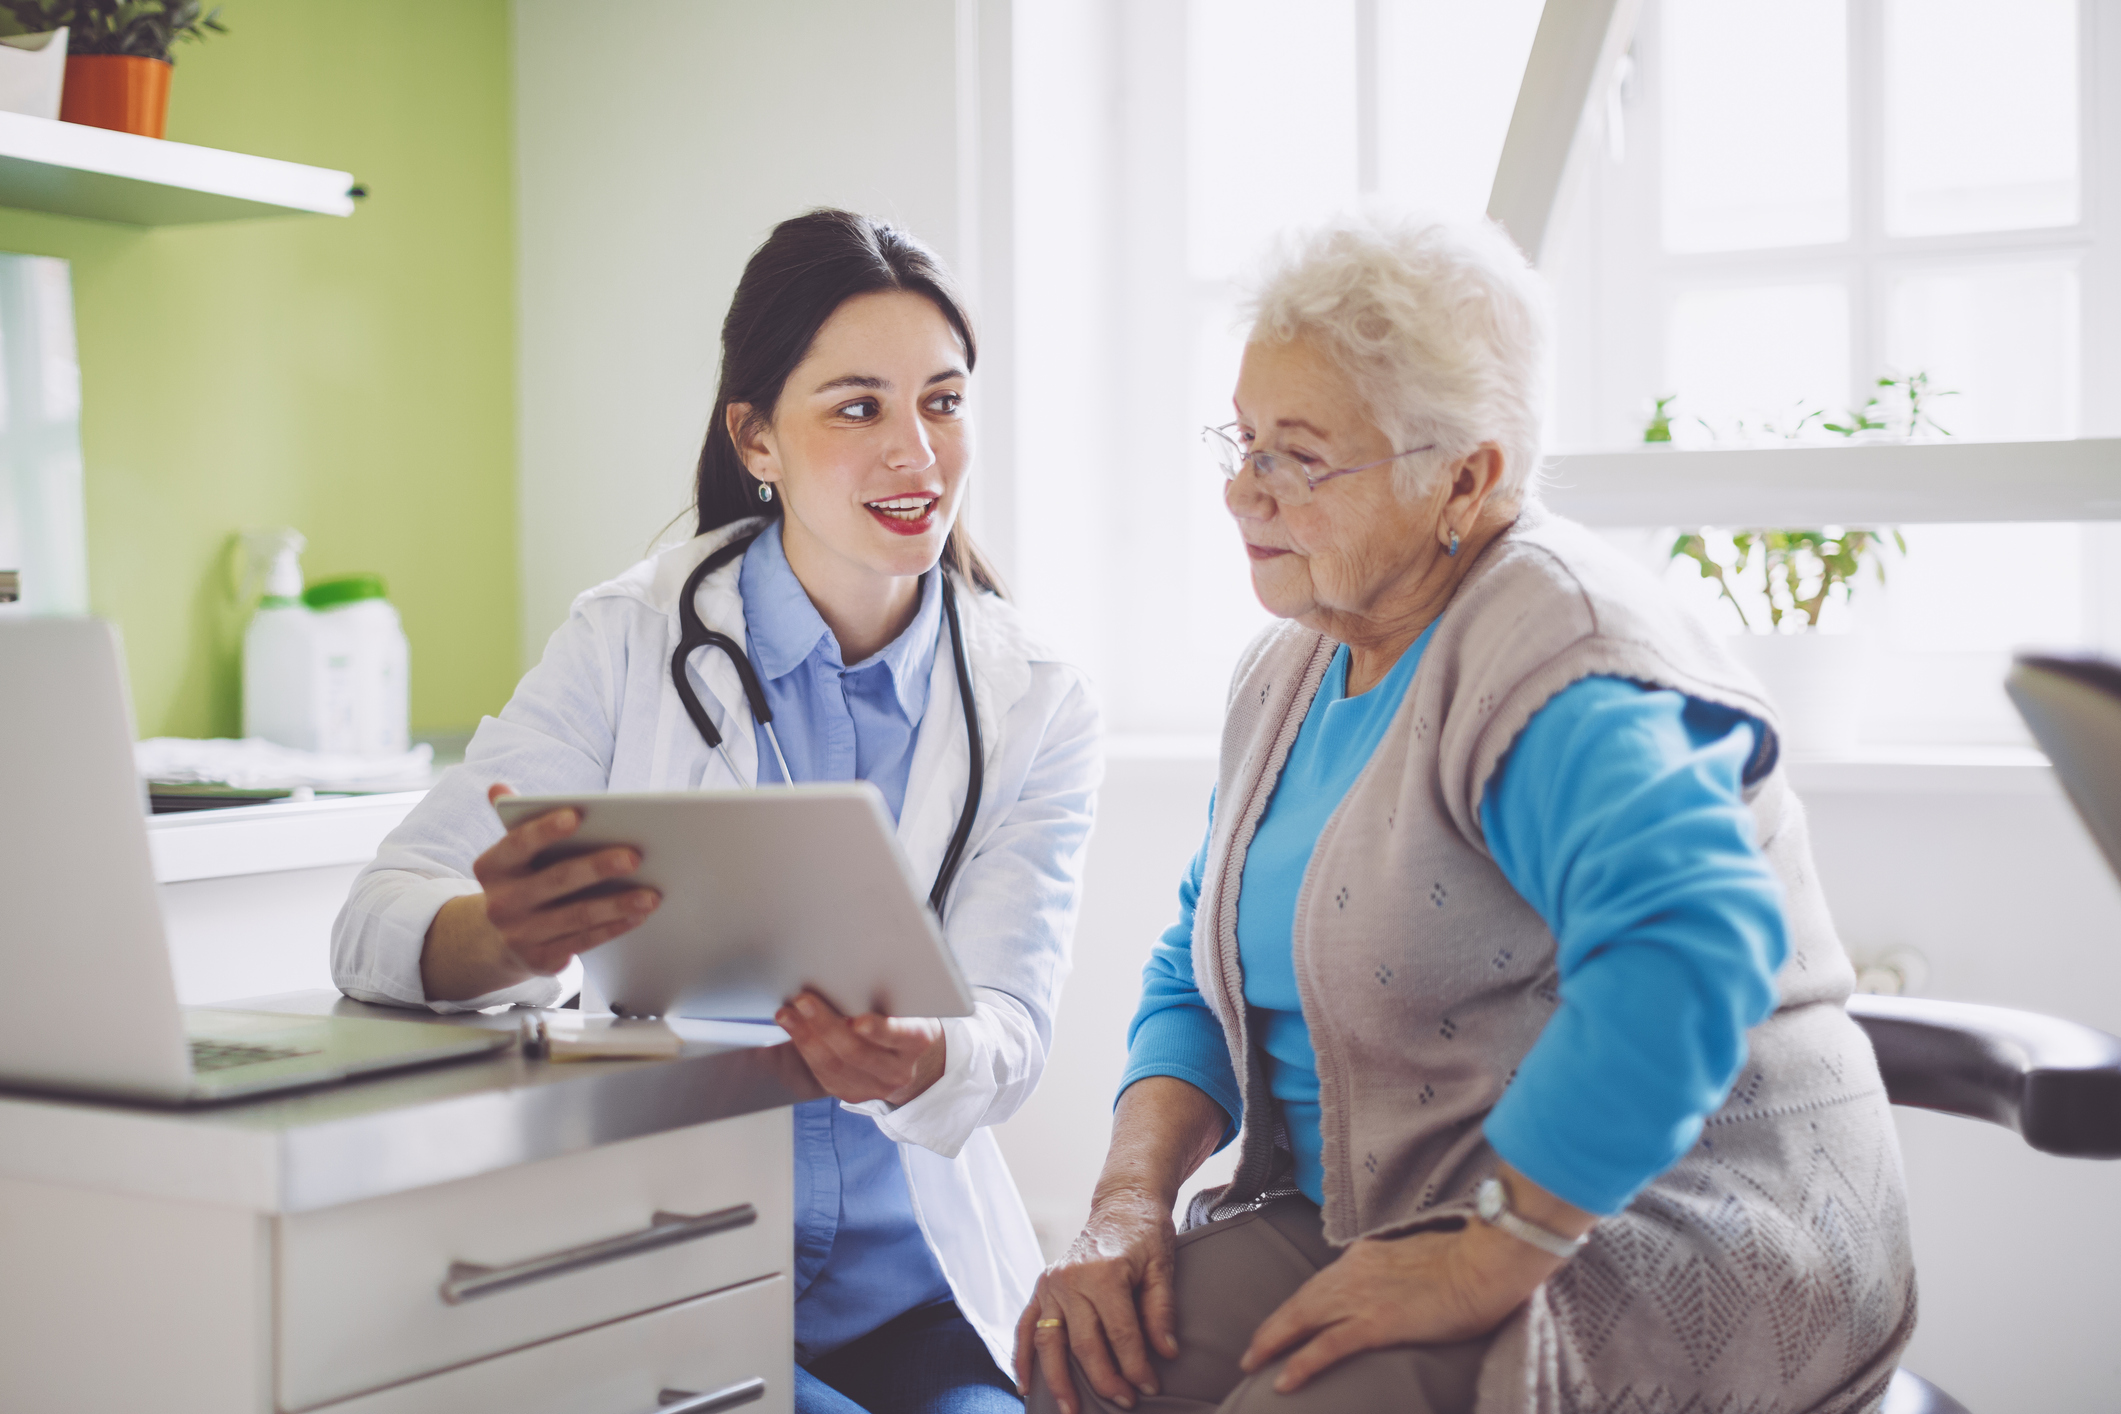 Female physician showing a tablet to older female patient